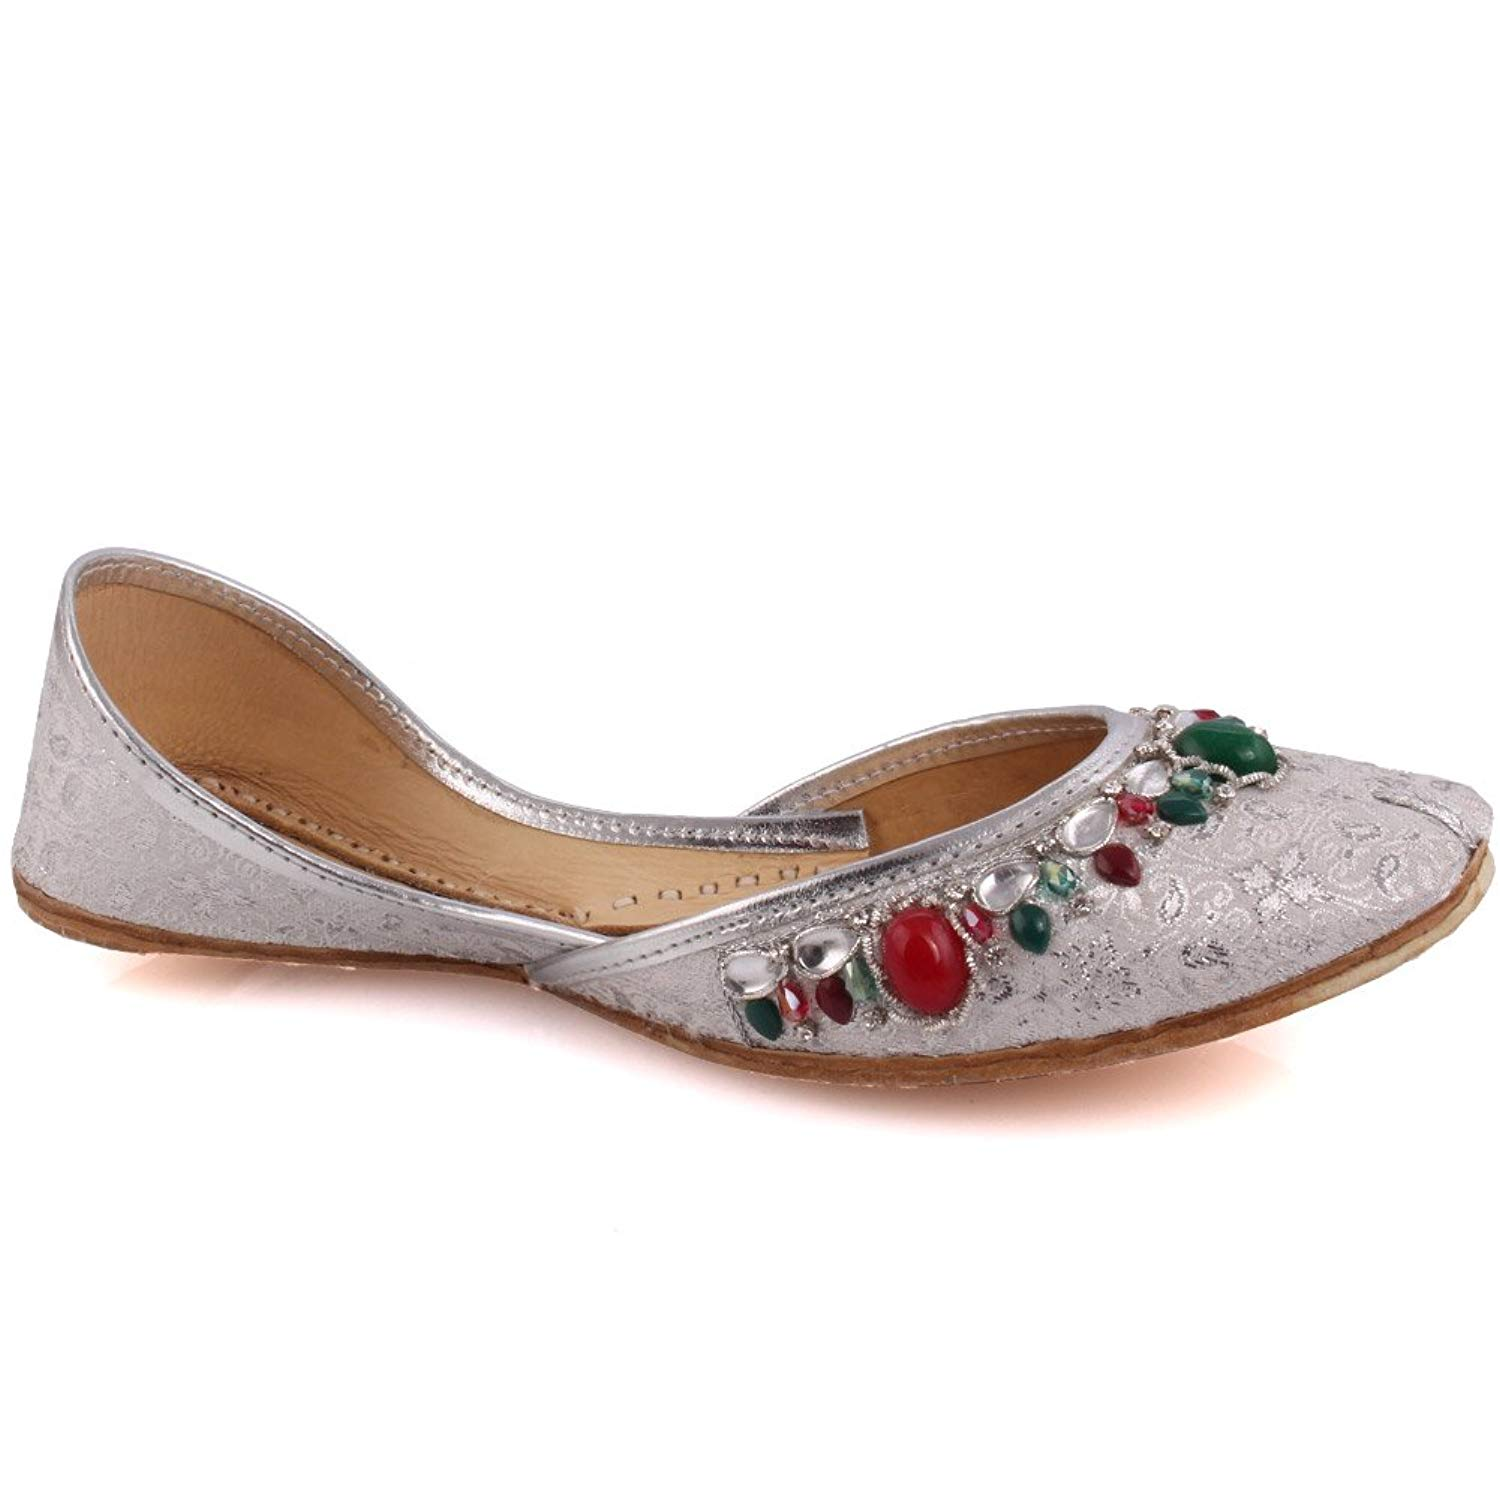 f4d73d26a2d031 Get Quotations · Unze New Women Traditional  Topaz  Handmade Leather Flat  Khussa Pump Slippers Shoes UK Size